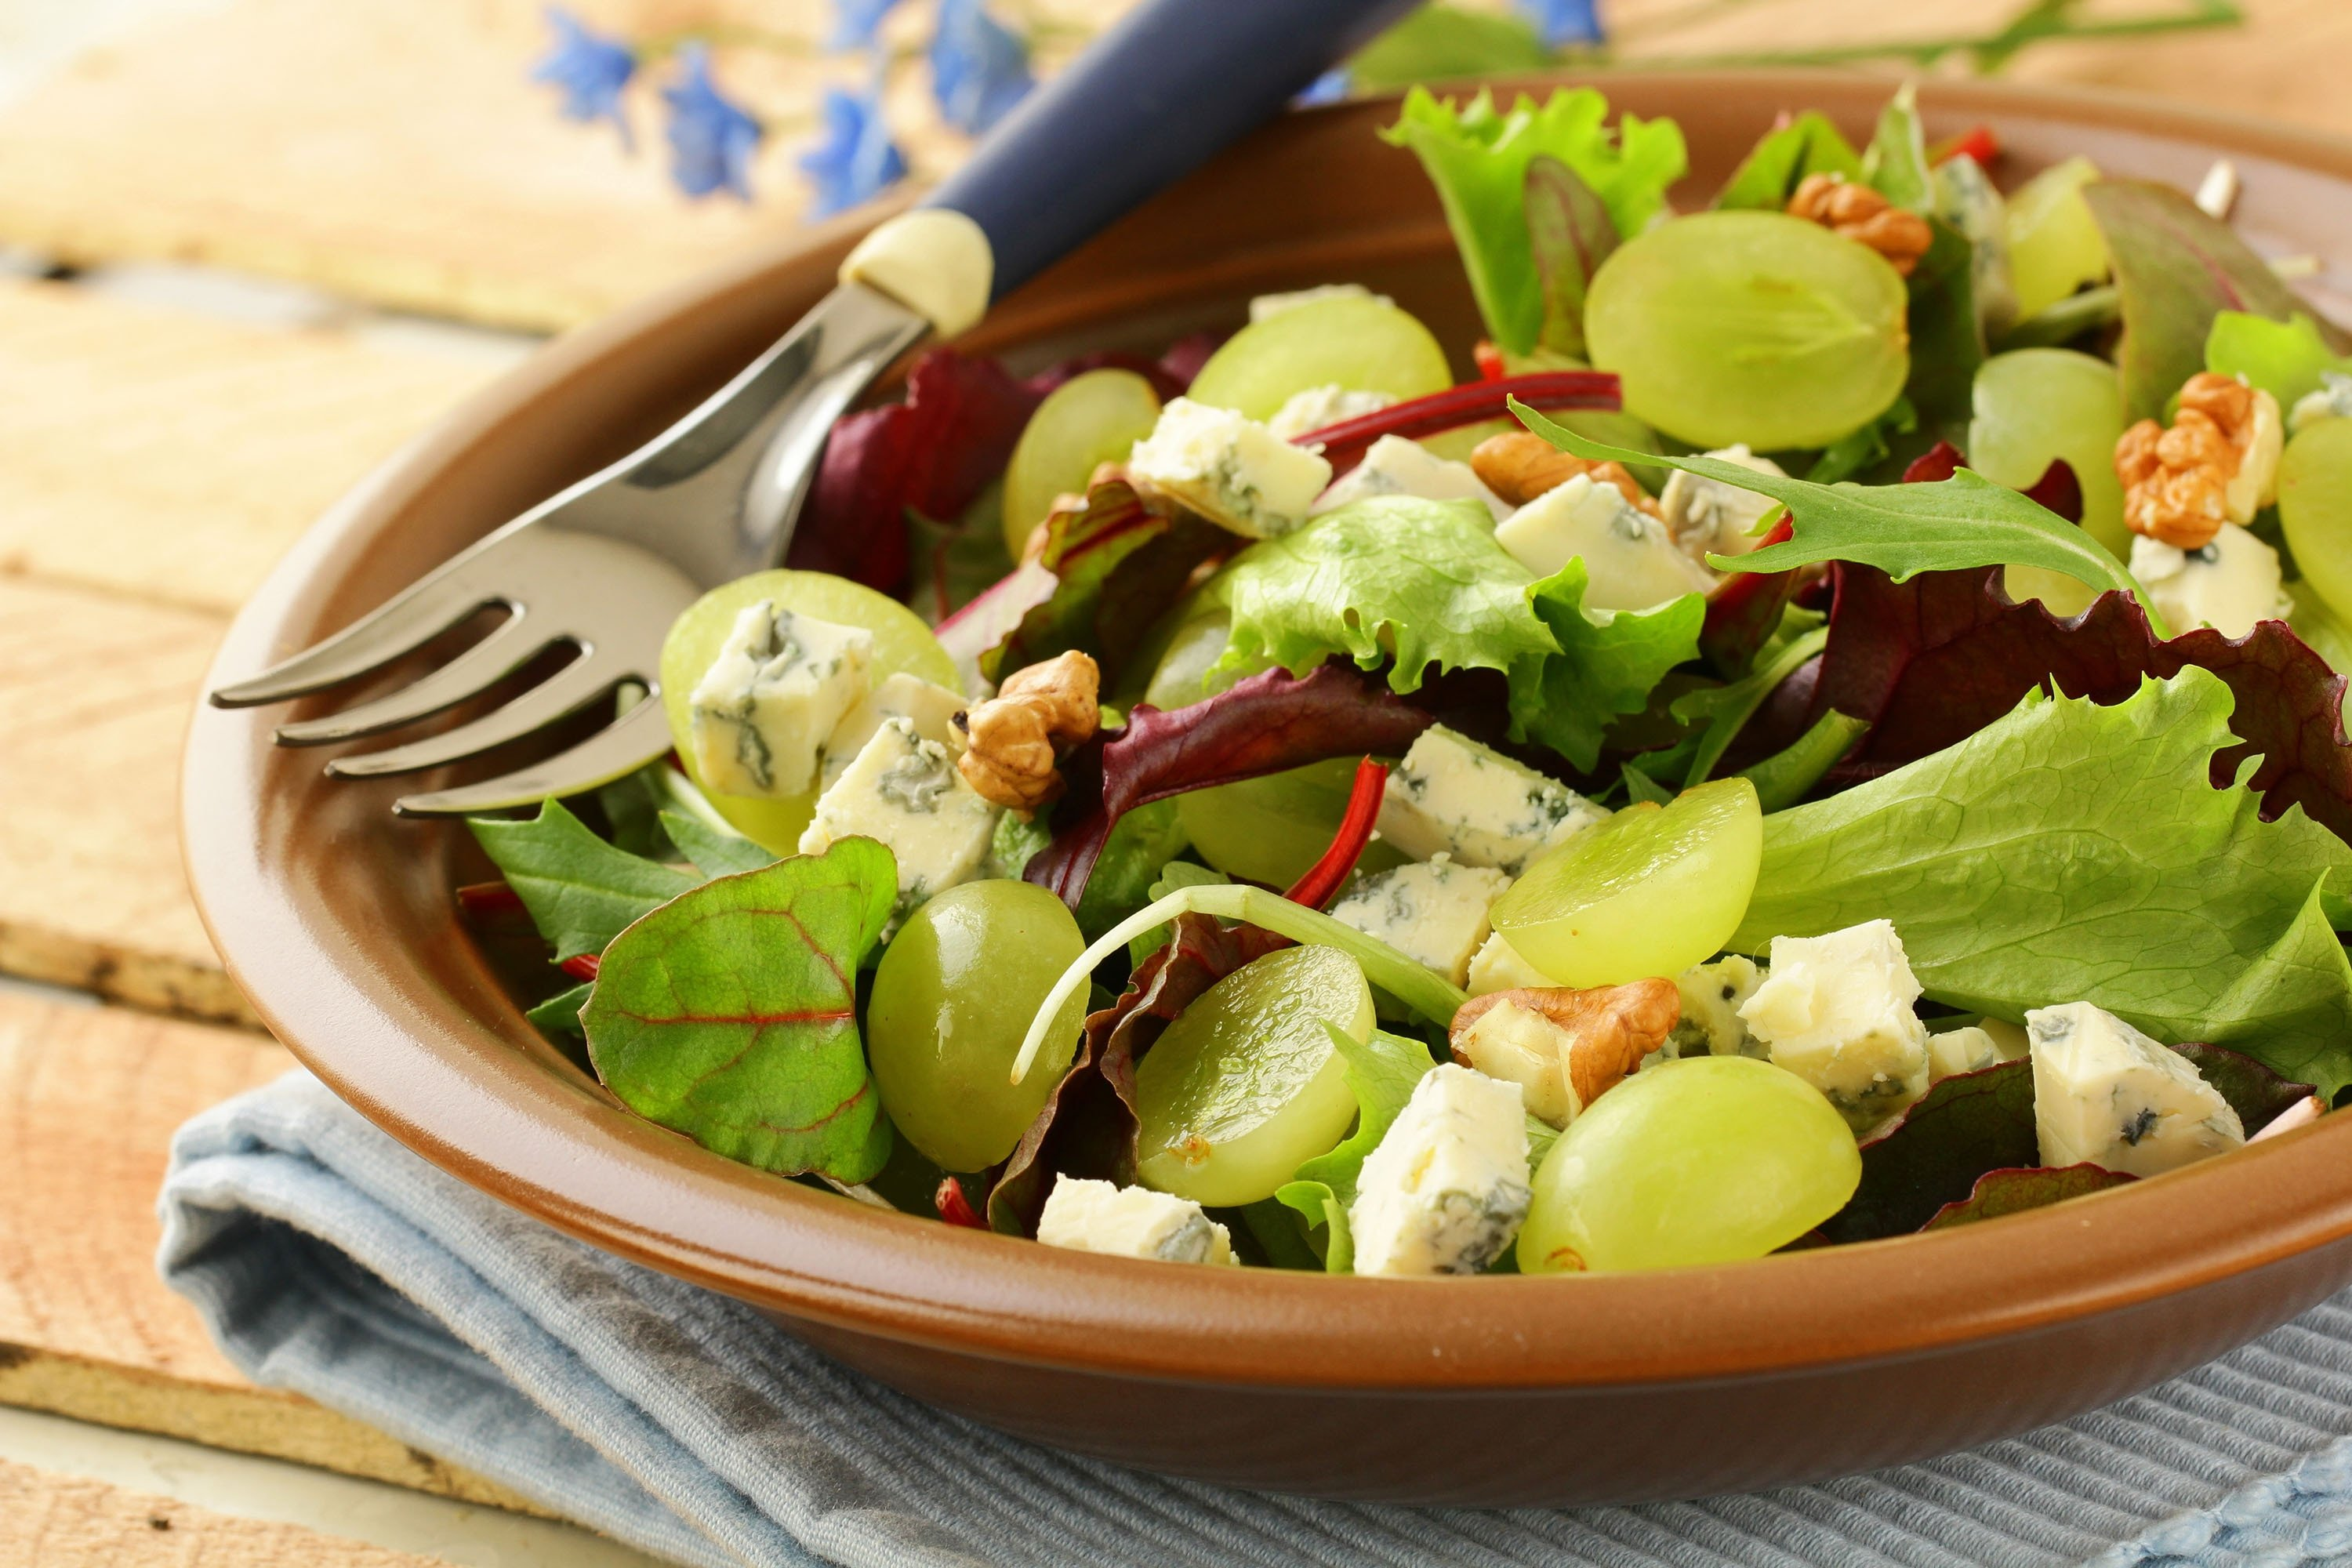 A salad with grapes, walnuts and blue cheese. (Shutterstock Photo)